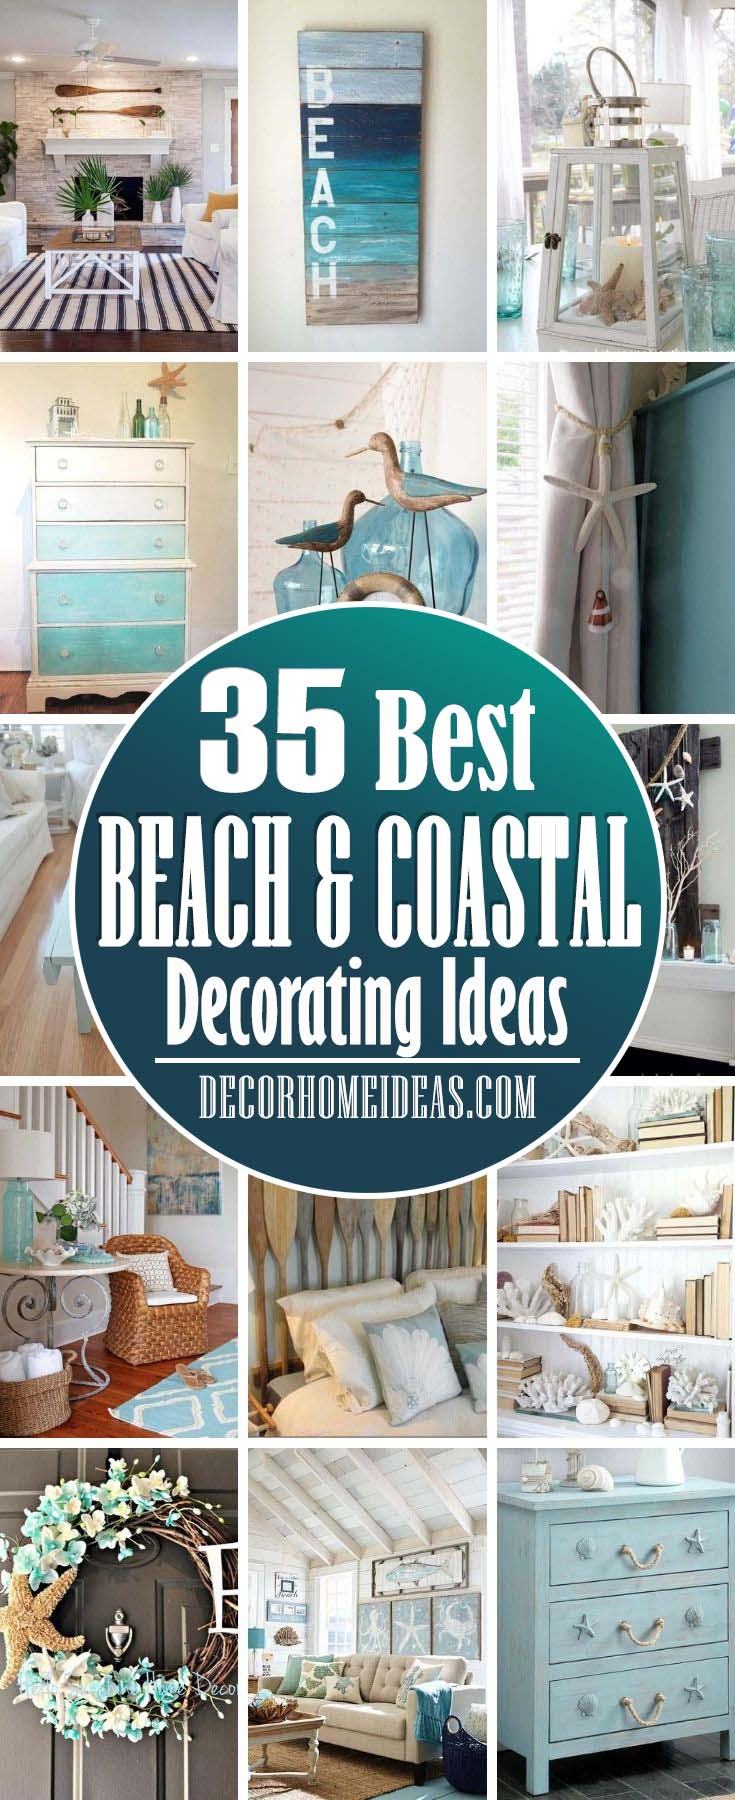 Best Beach And Coastal Decorating Ideas. If dream about beach, sand and ocean breezes, you can enhance the natural beauty of your home with light and airy beach house decor. #decorhomeideas